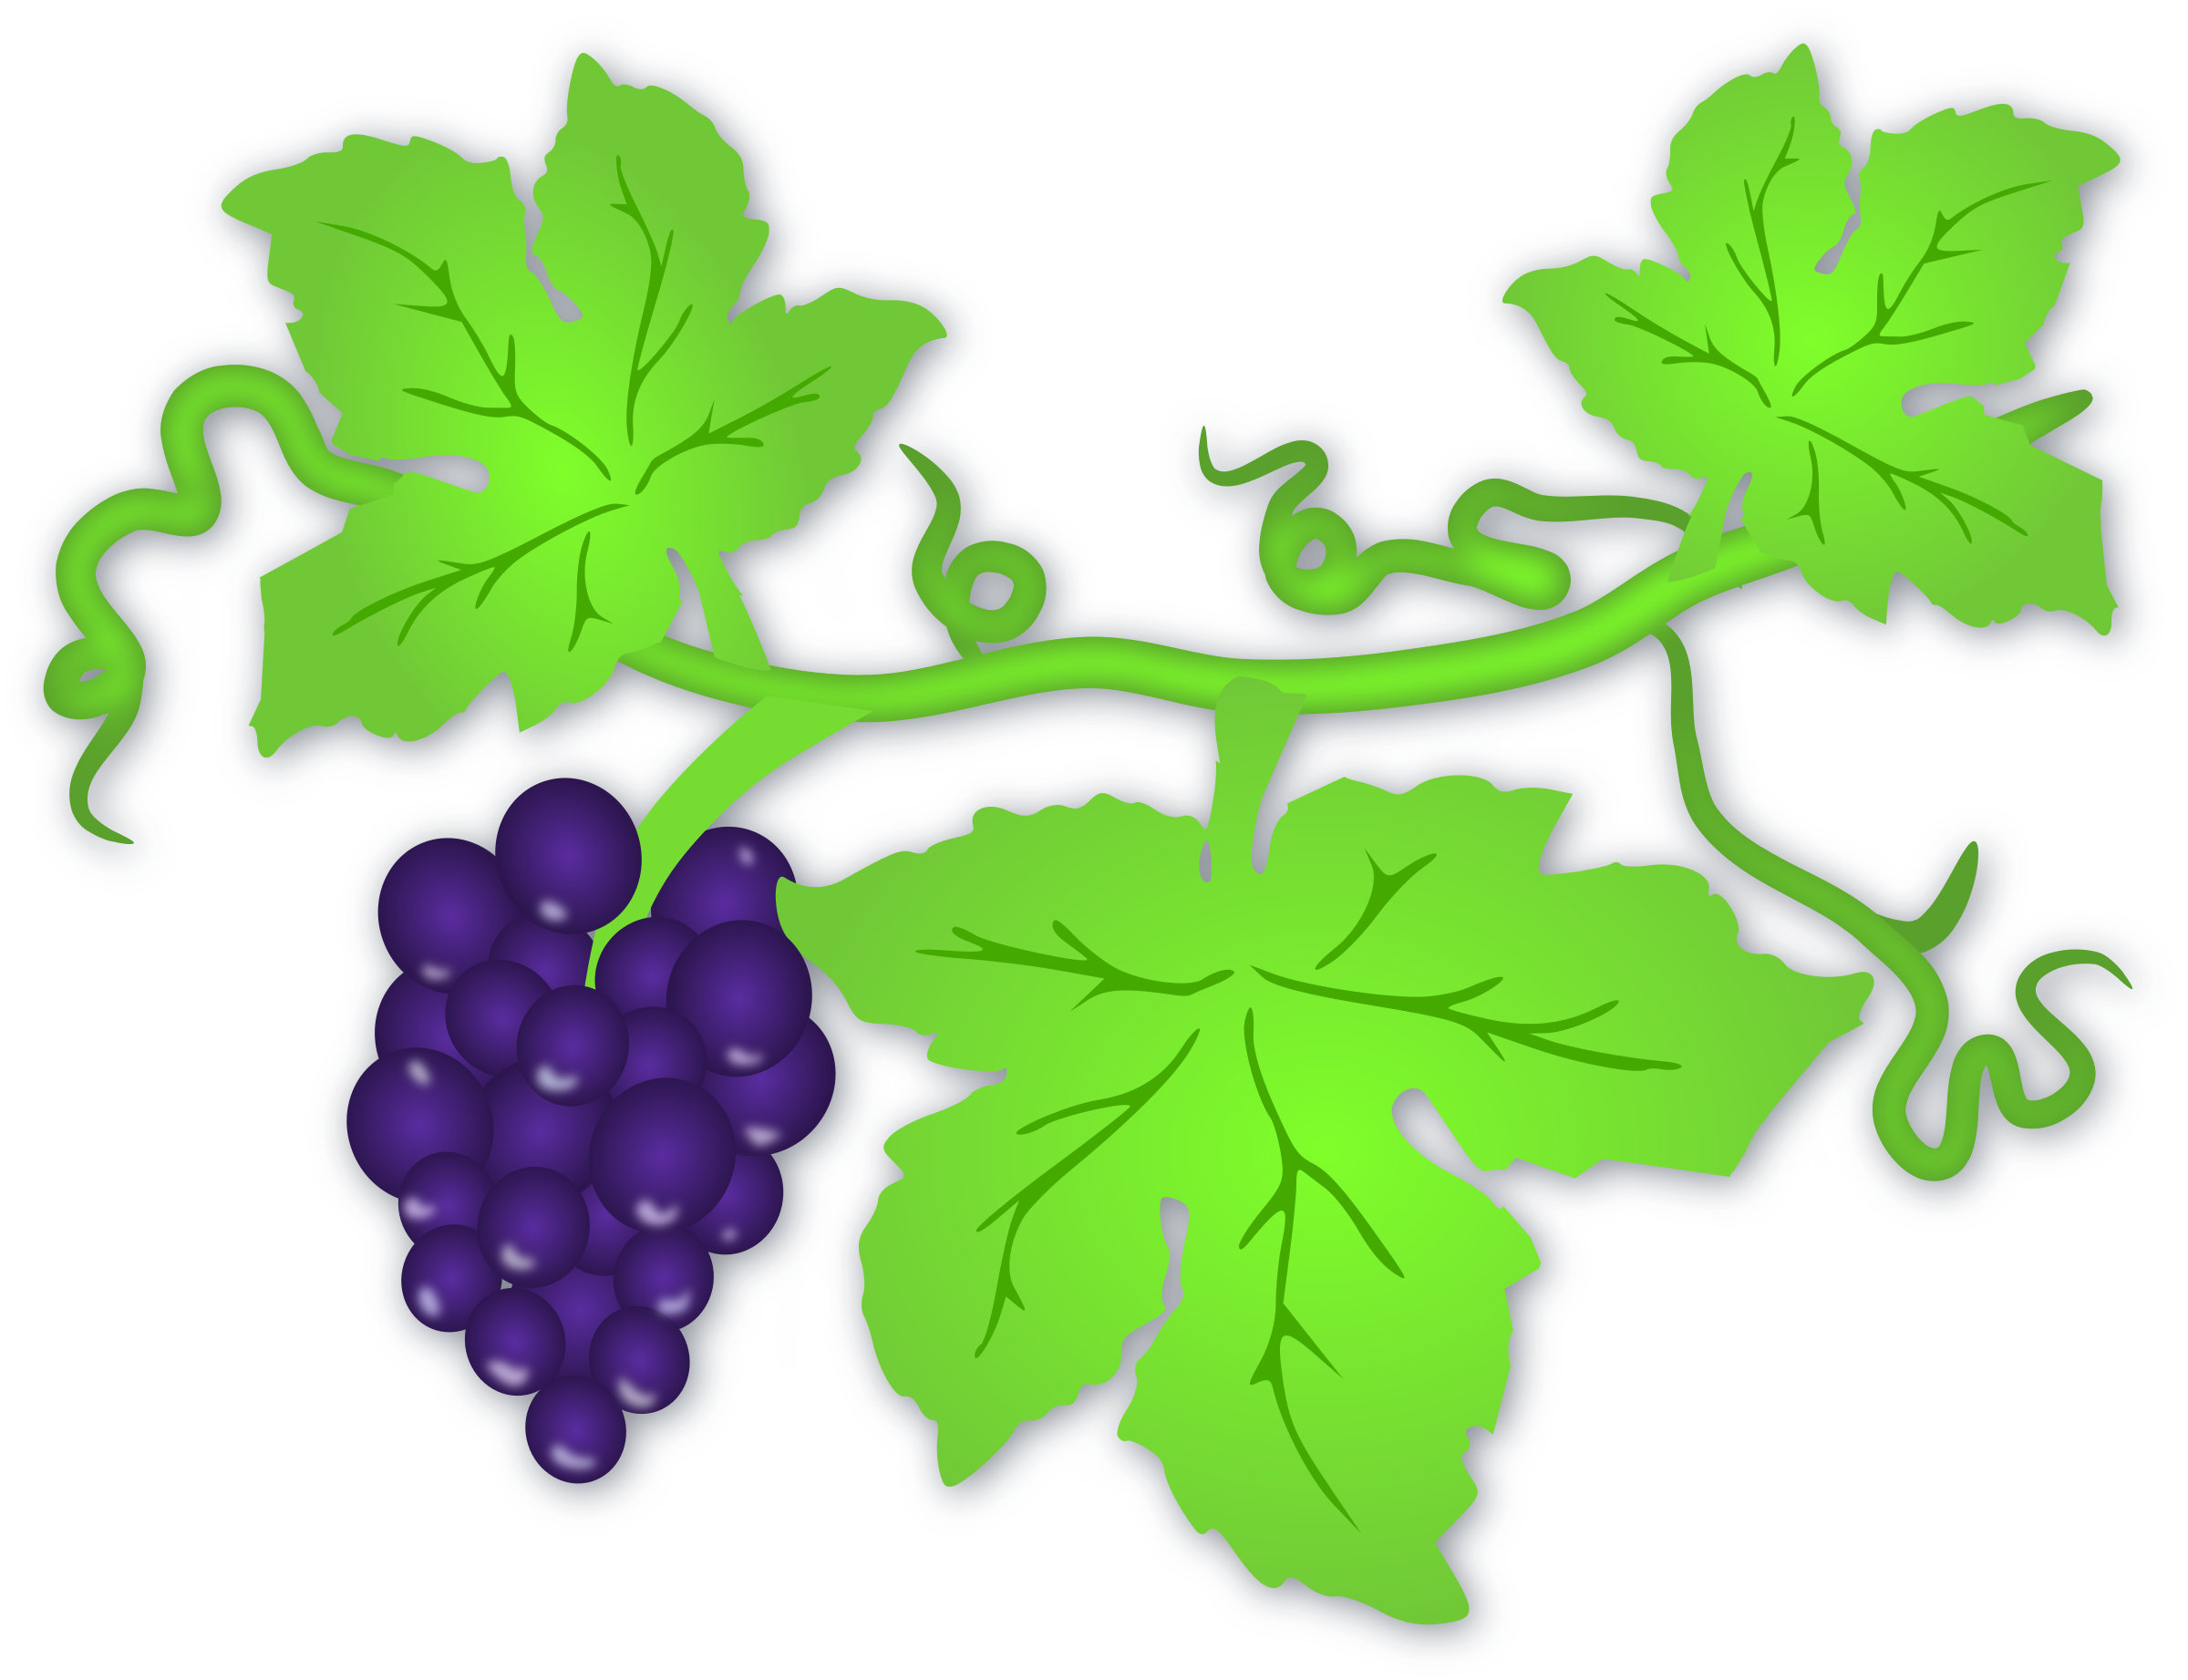 Grapes clipart frame. Big image png